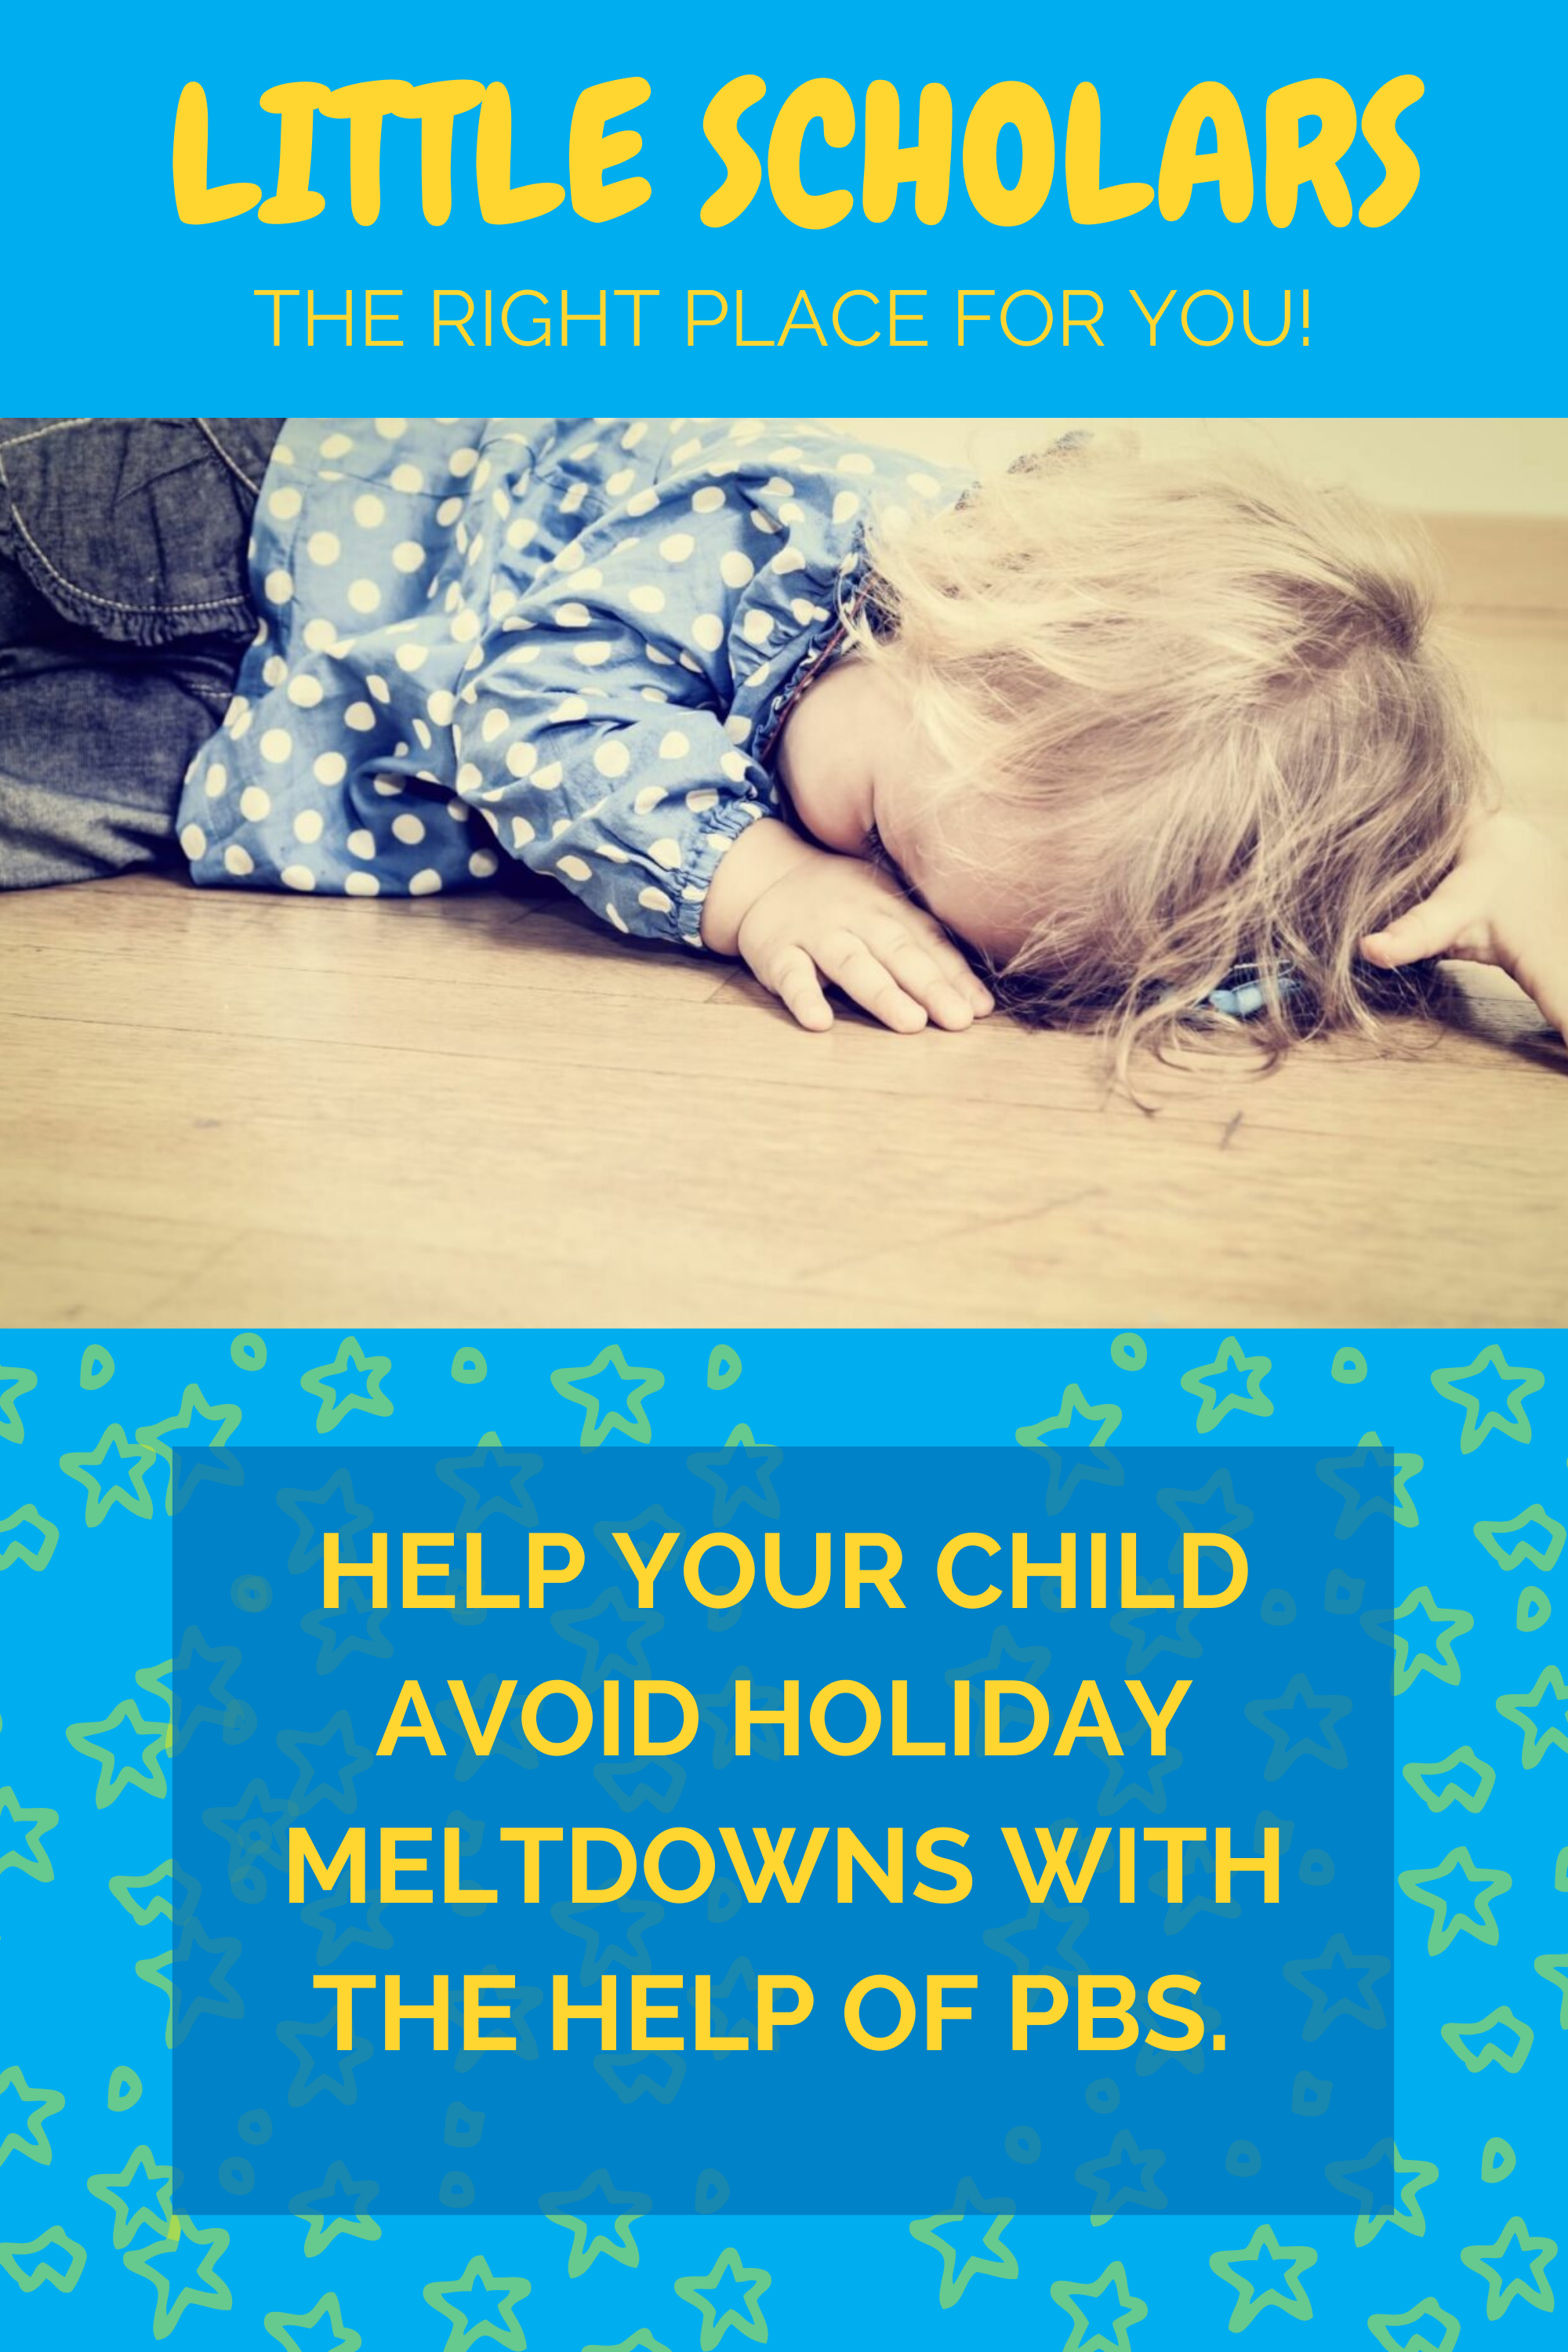 The Holidays Can Be Rough On Everyone Pbs Is Here To Help With Strategies To Teach Your Child To Manag Preschool Education Nyc With Kids Emotional Development